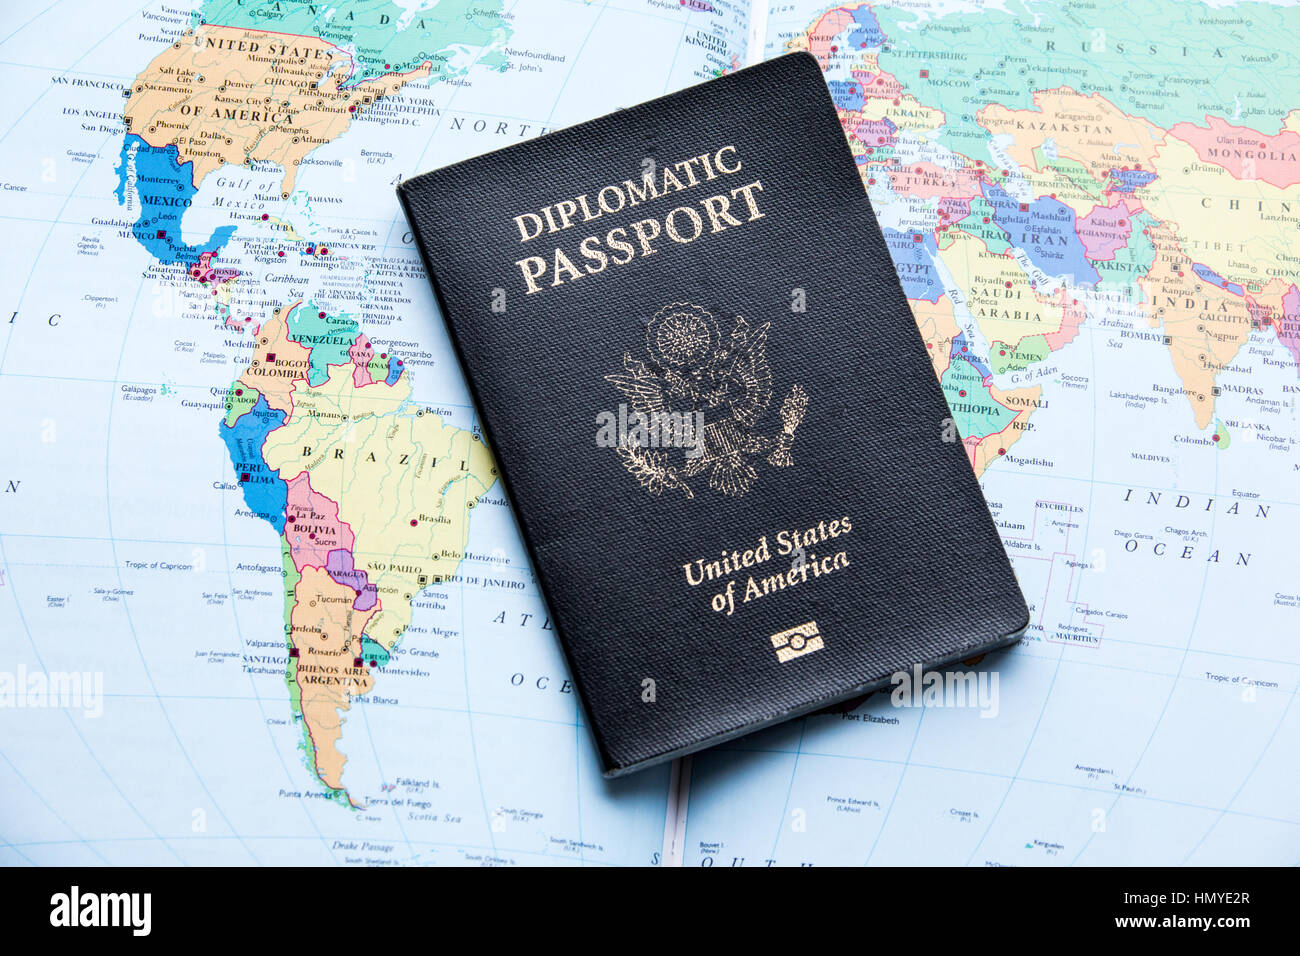 Diplomatic Passport Of The United States Of America Stock